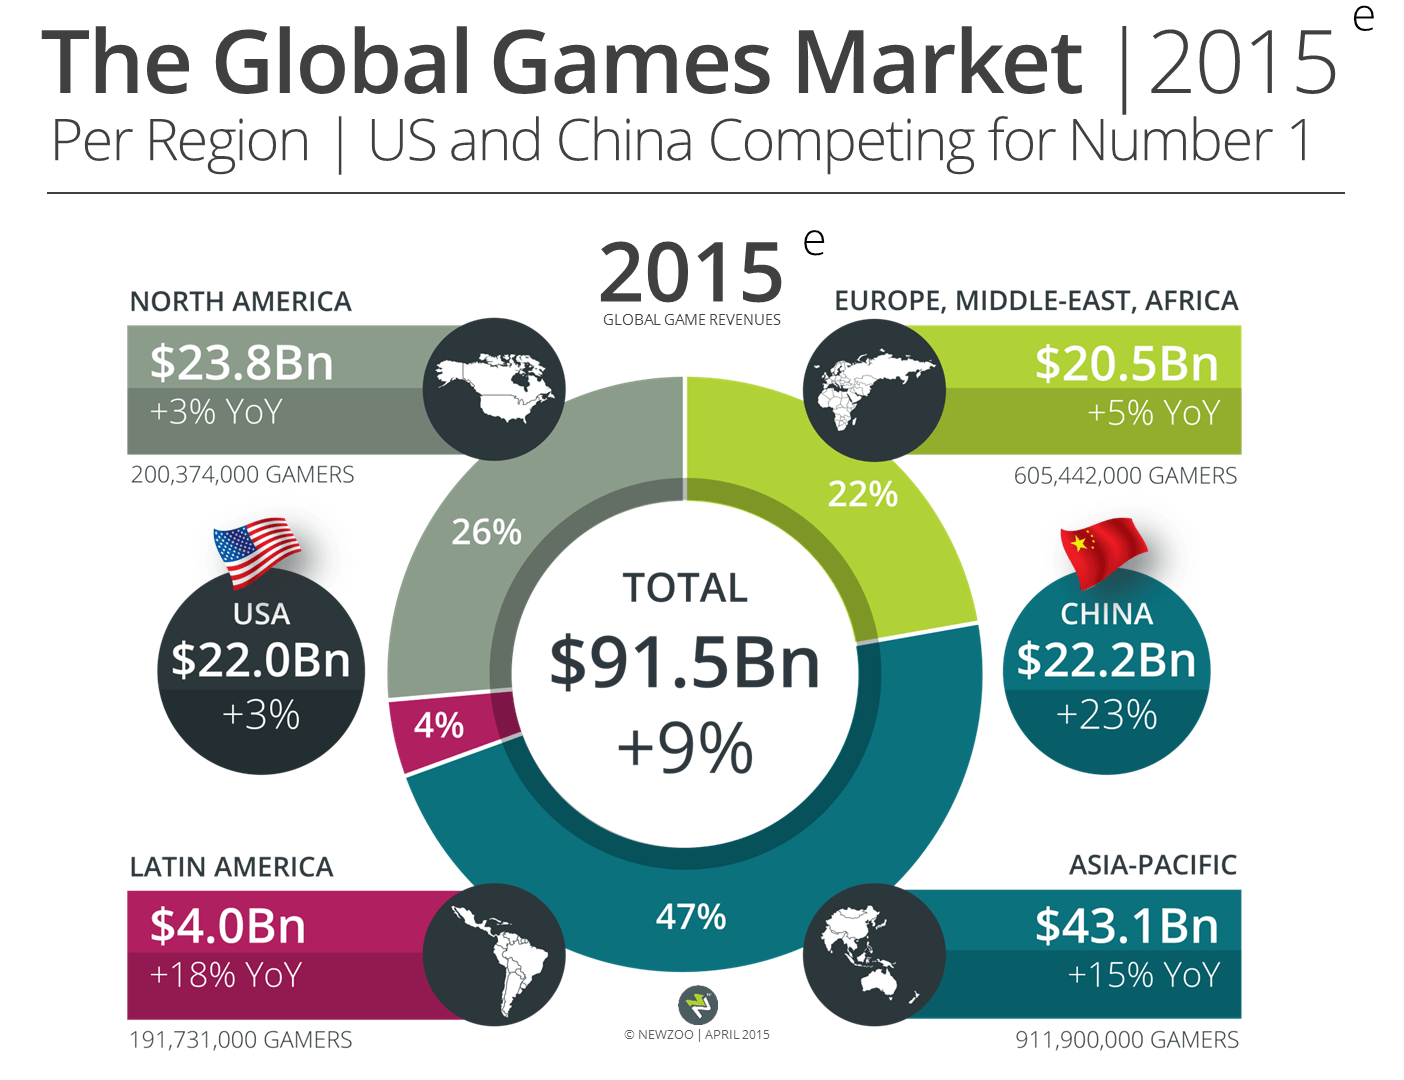 Newzoo Global Games Market April 2015